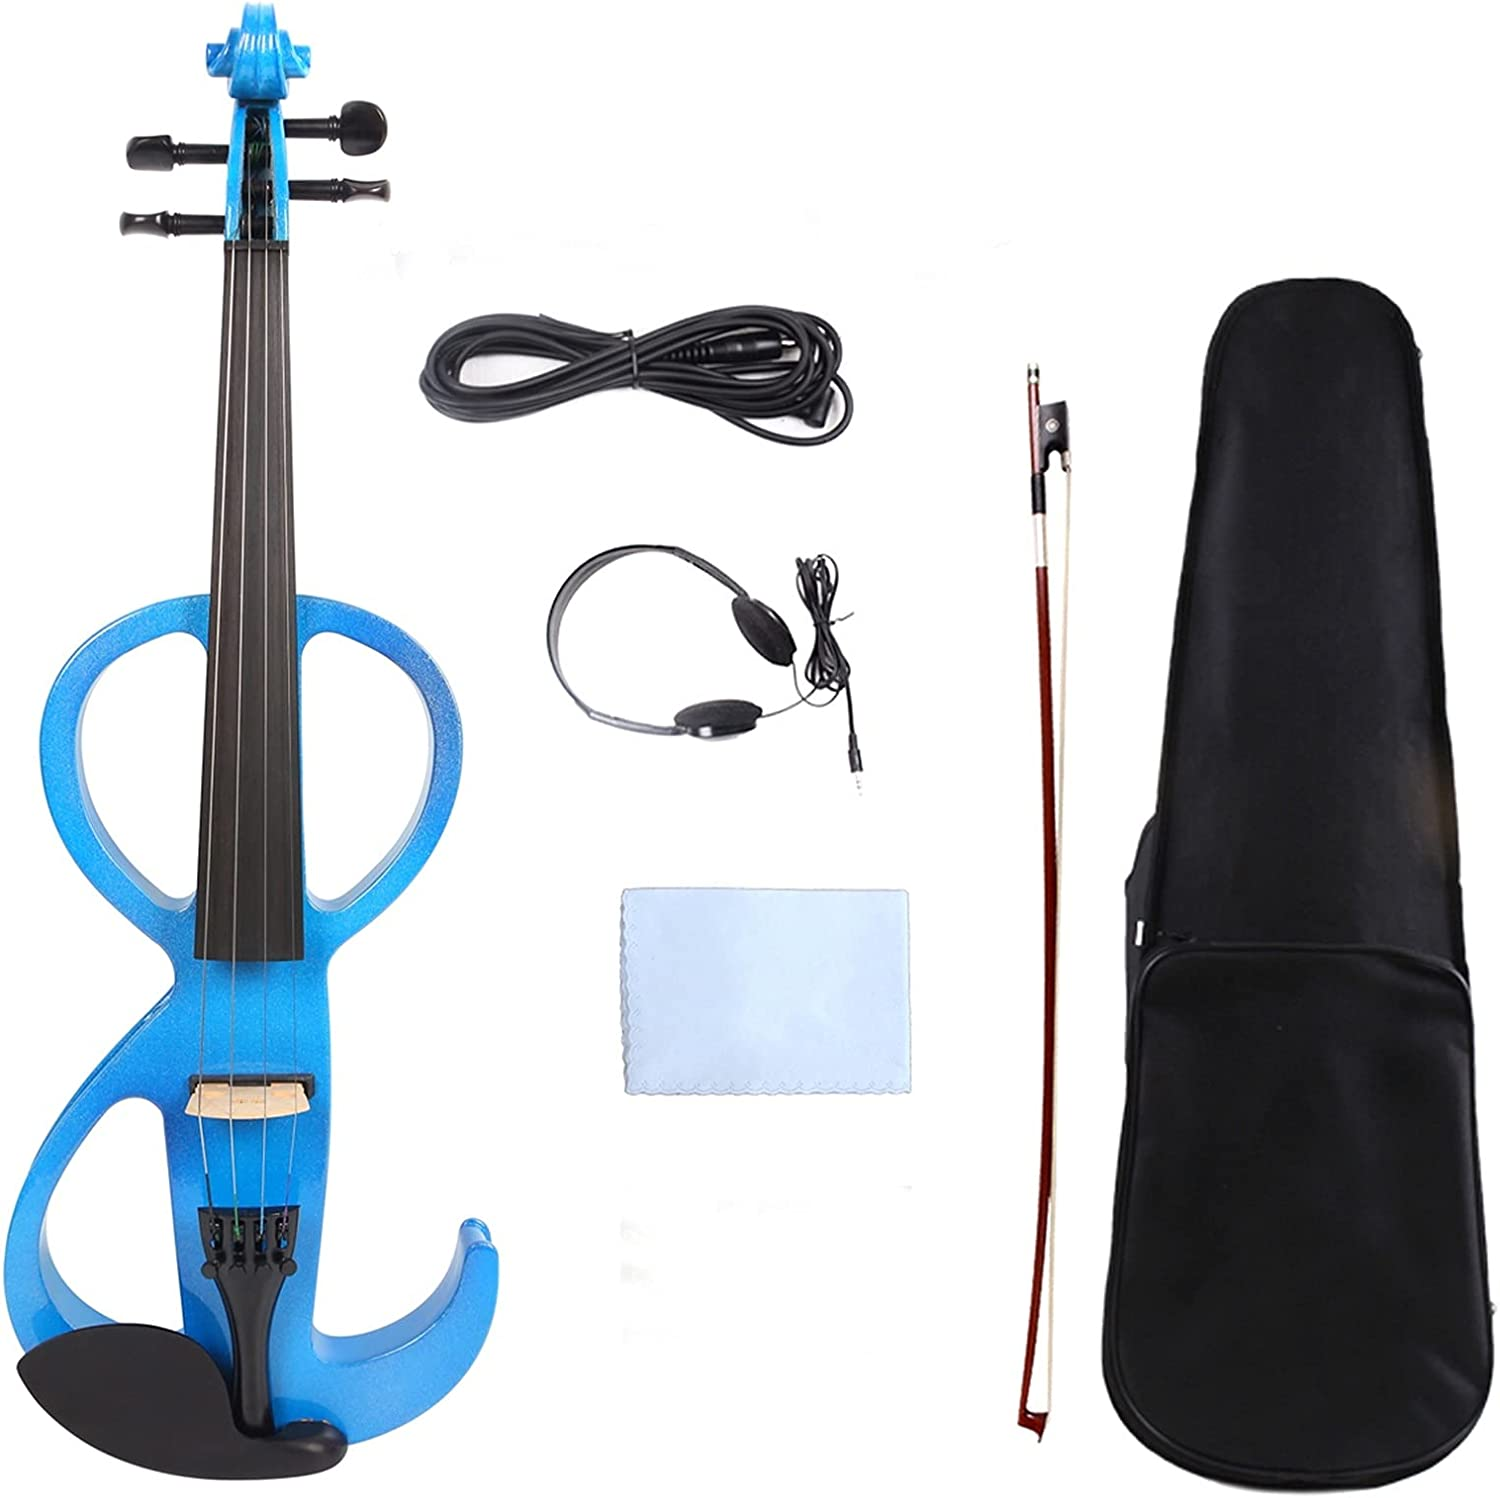 5 ☆ popular Mail order Blue 4 Electric Silent Violin Wood Vi Hand-Made Case+Bow+Cable